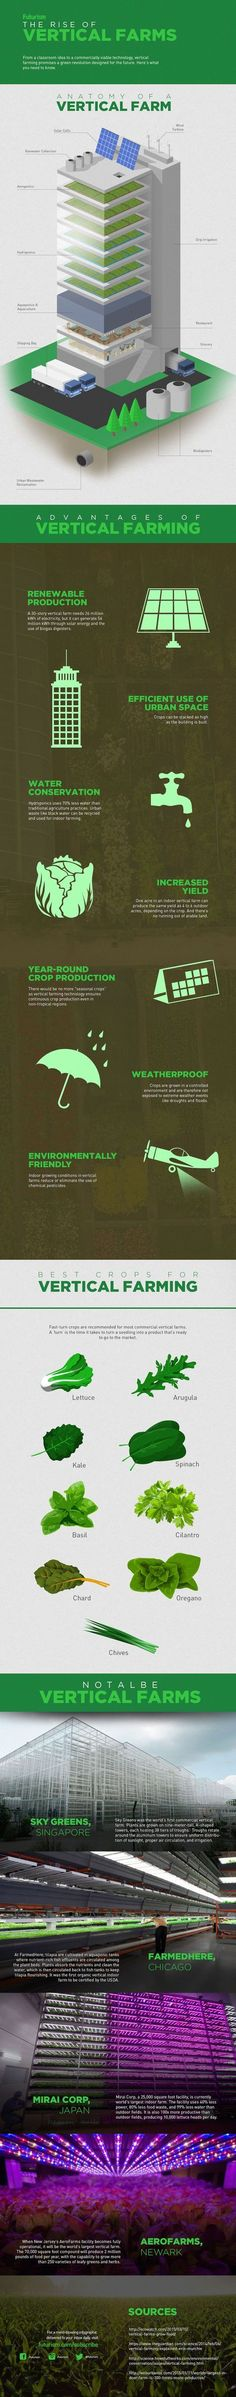 By 2050, nearly 2/3 of the world's population will be living in cities. Here's how we'll feed them. http://futurism.com/images/the-rise-of-vertical-farms-infographic/?utm_campaign=coschedule&utm_source=pinterest&utm_medium=Futurism&utm_content=The%20Rise%20Of%20Vertical%20Farms%20%5BInfographic%5D #hydroponicsinfographic